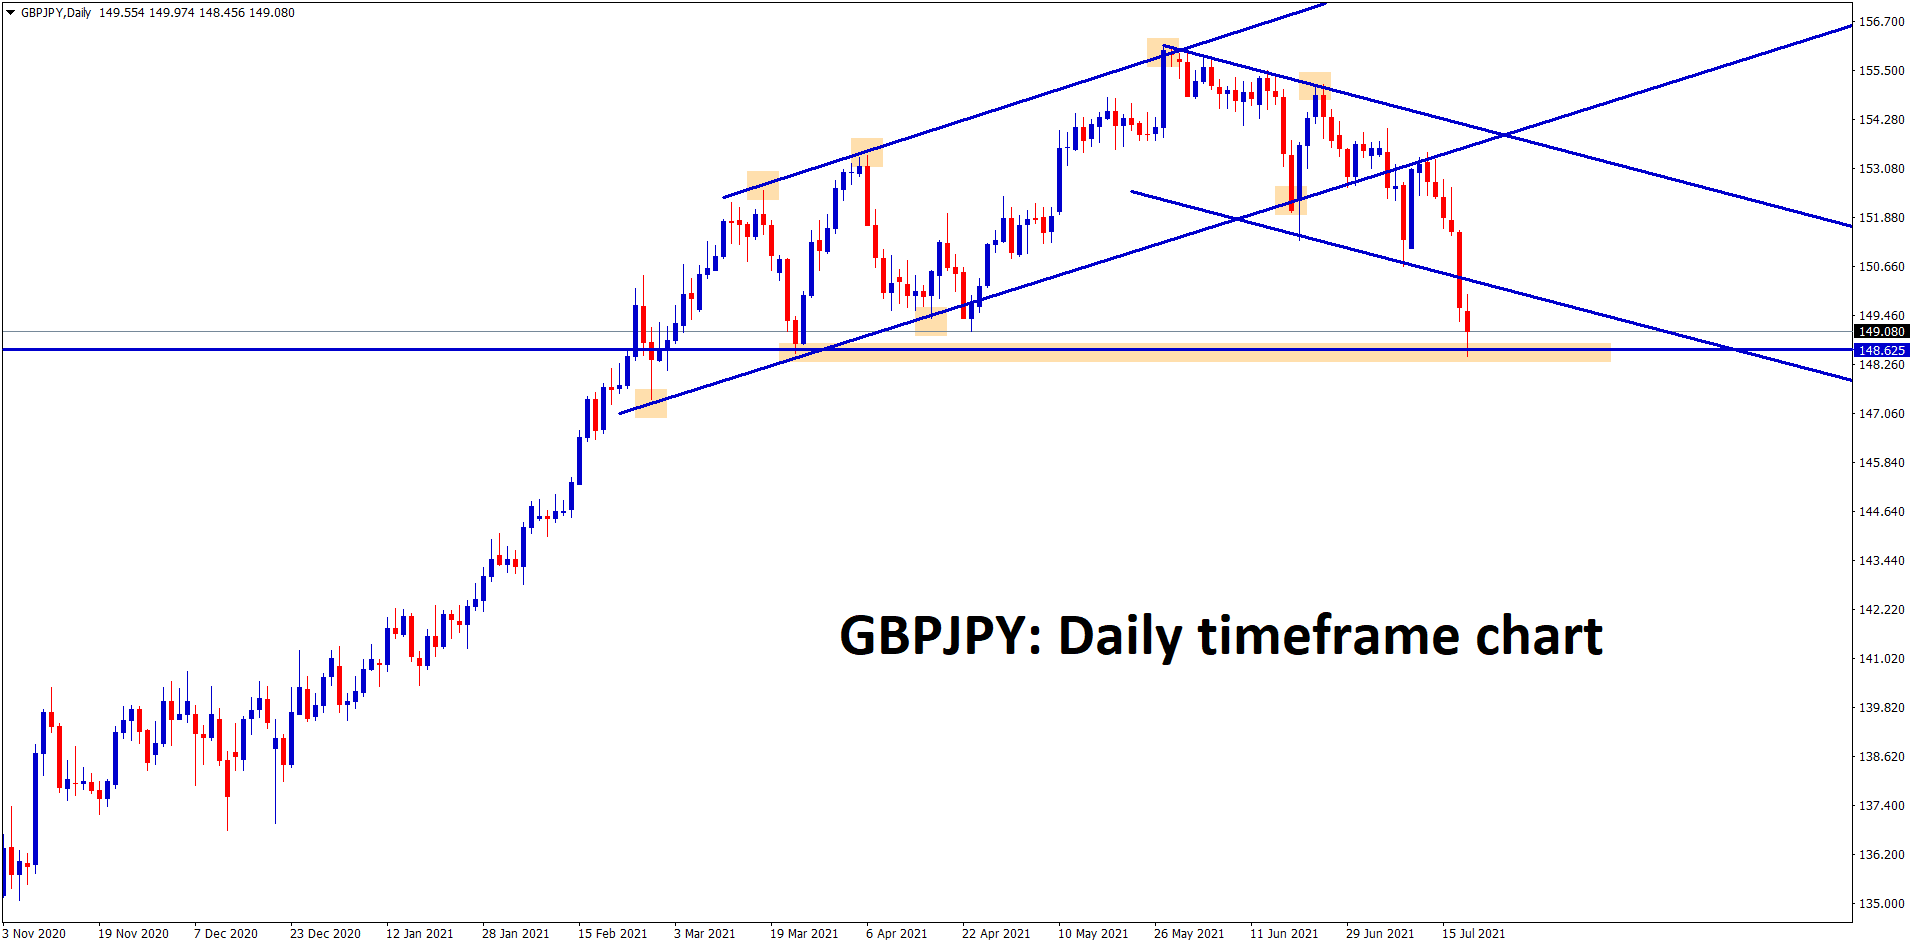 GBPJPY hits the horizontal support zone